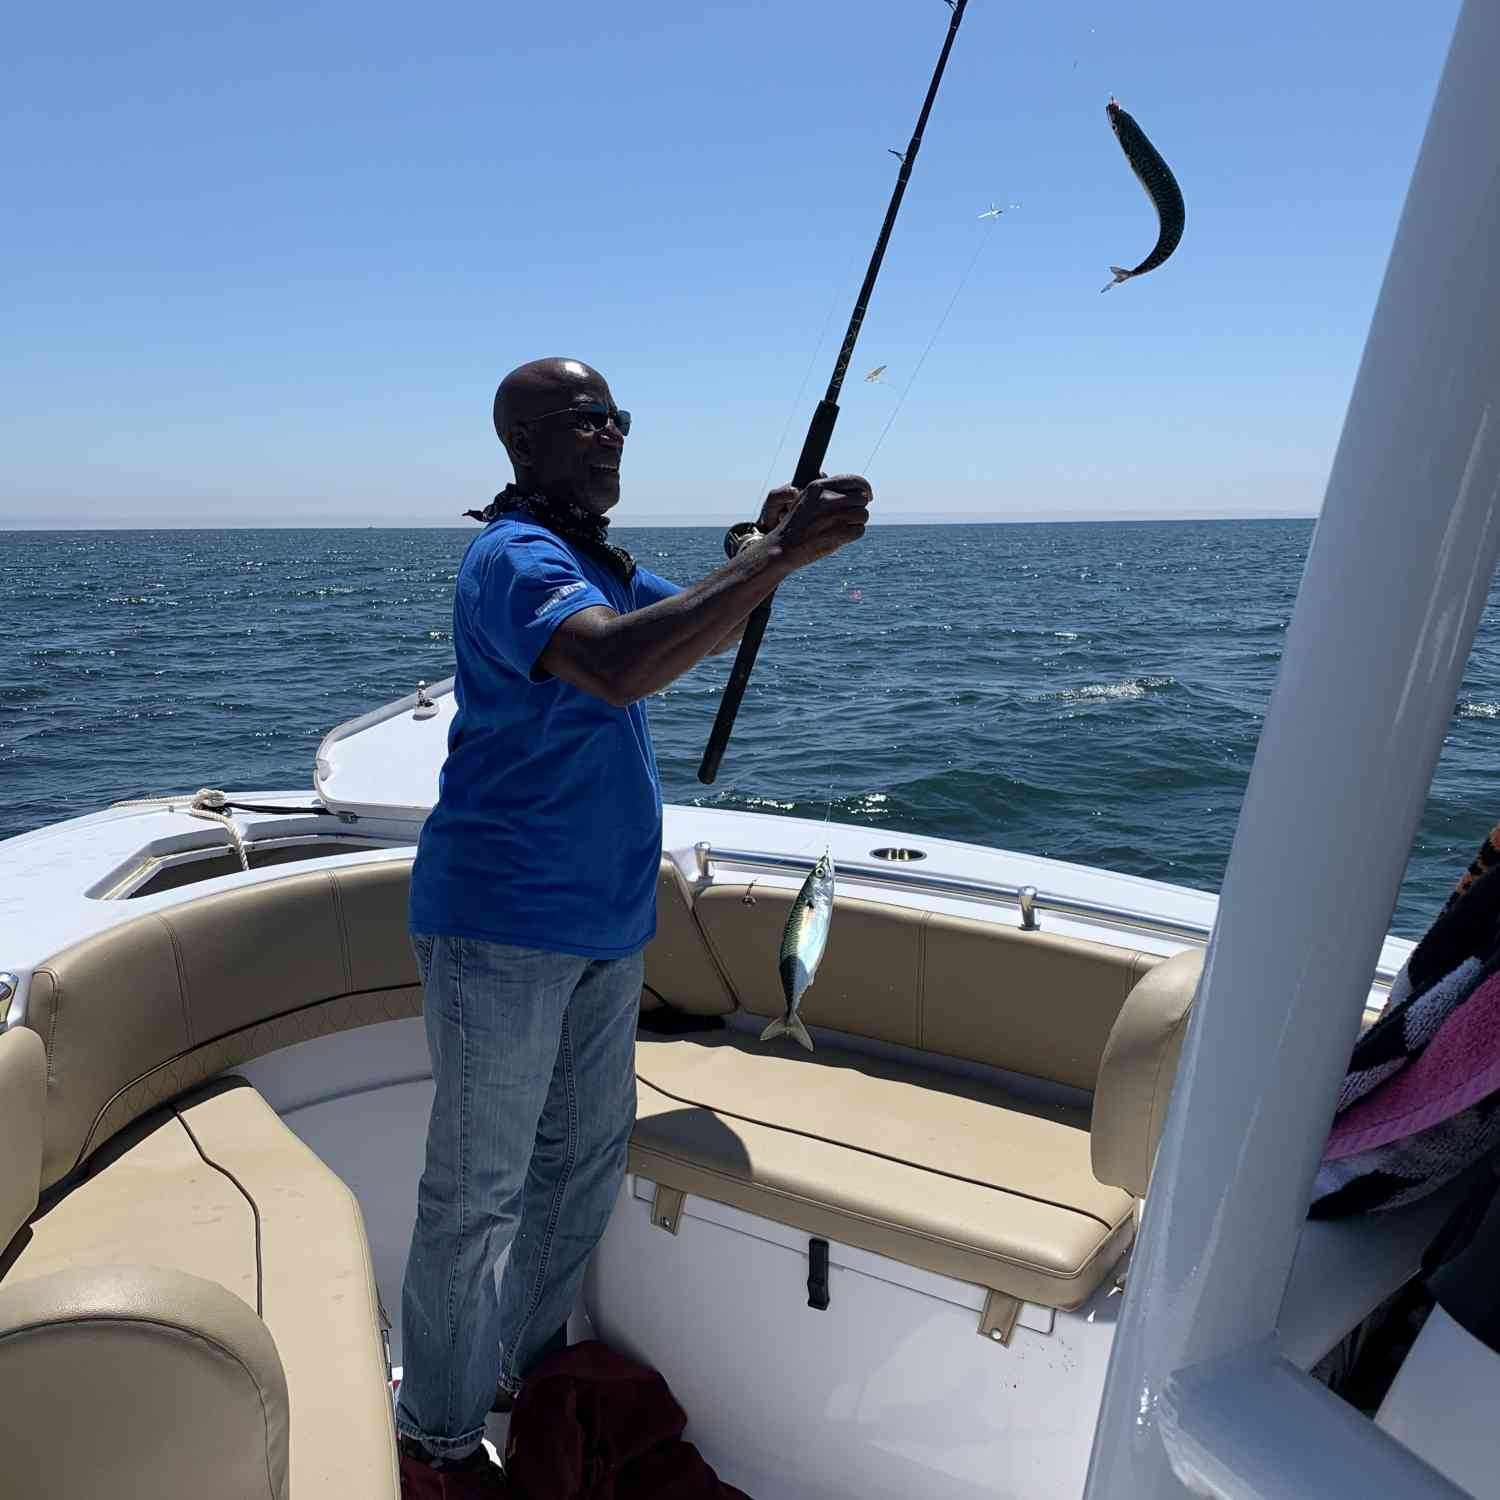 Title: Holy Mackerel ! - On board their Sportsman Open 232 Center Console - Location: Kennebunkport, Maine. Participating in the Photo Contest #SportsmanJuly2020